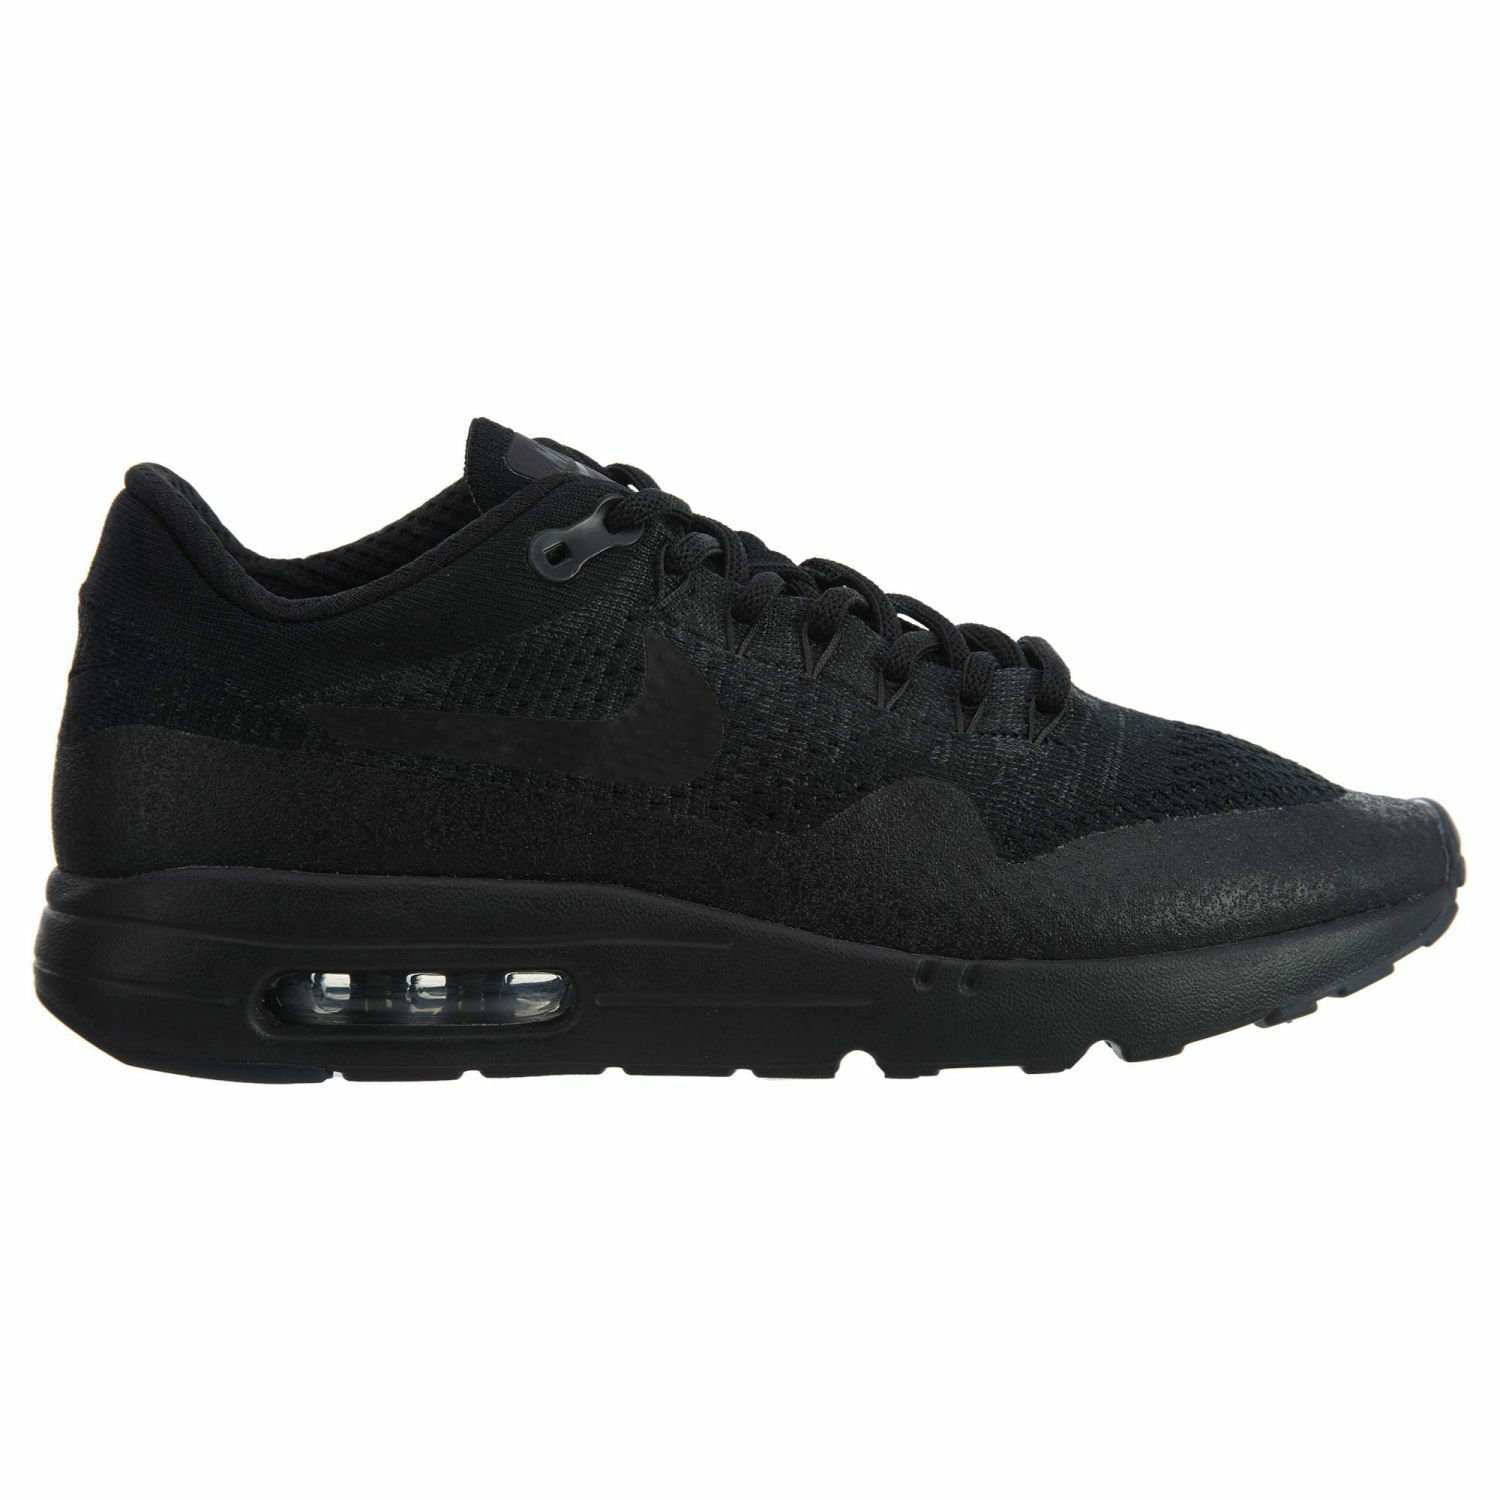 Nike air max max max 1 ultra flyknit laufschuhe schwarze anthrazit 856958 001 neue aa8ce7